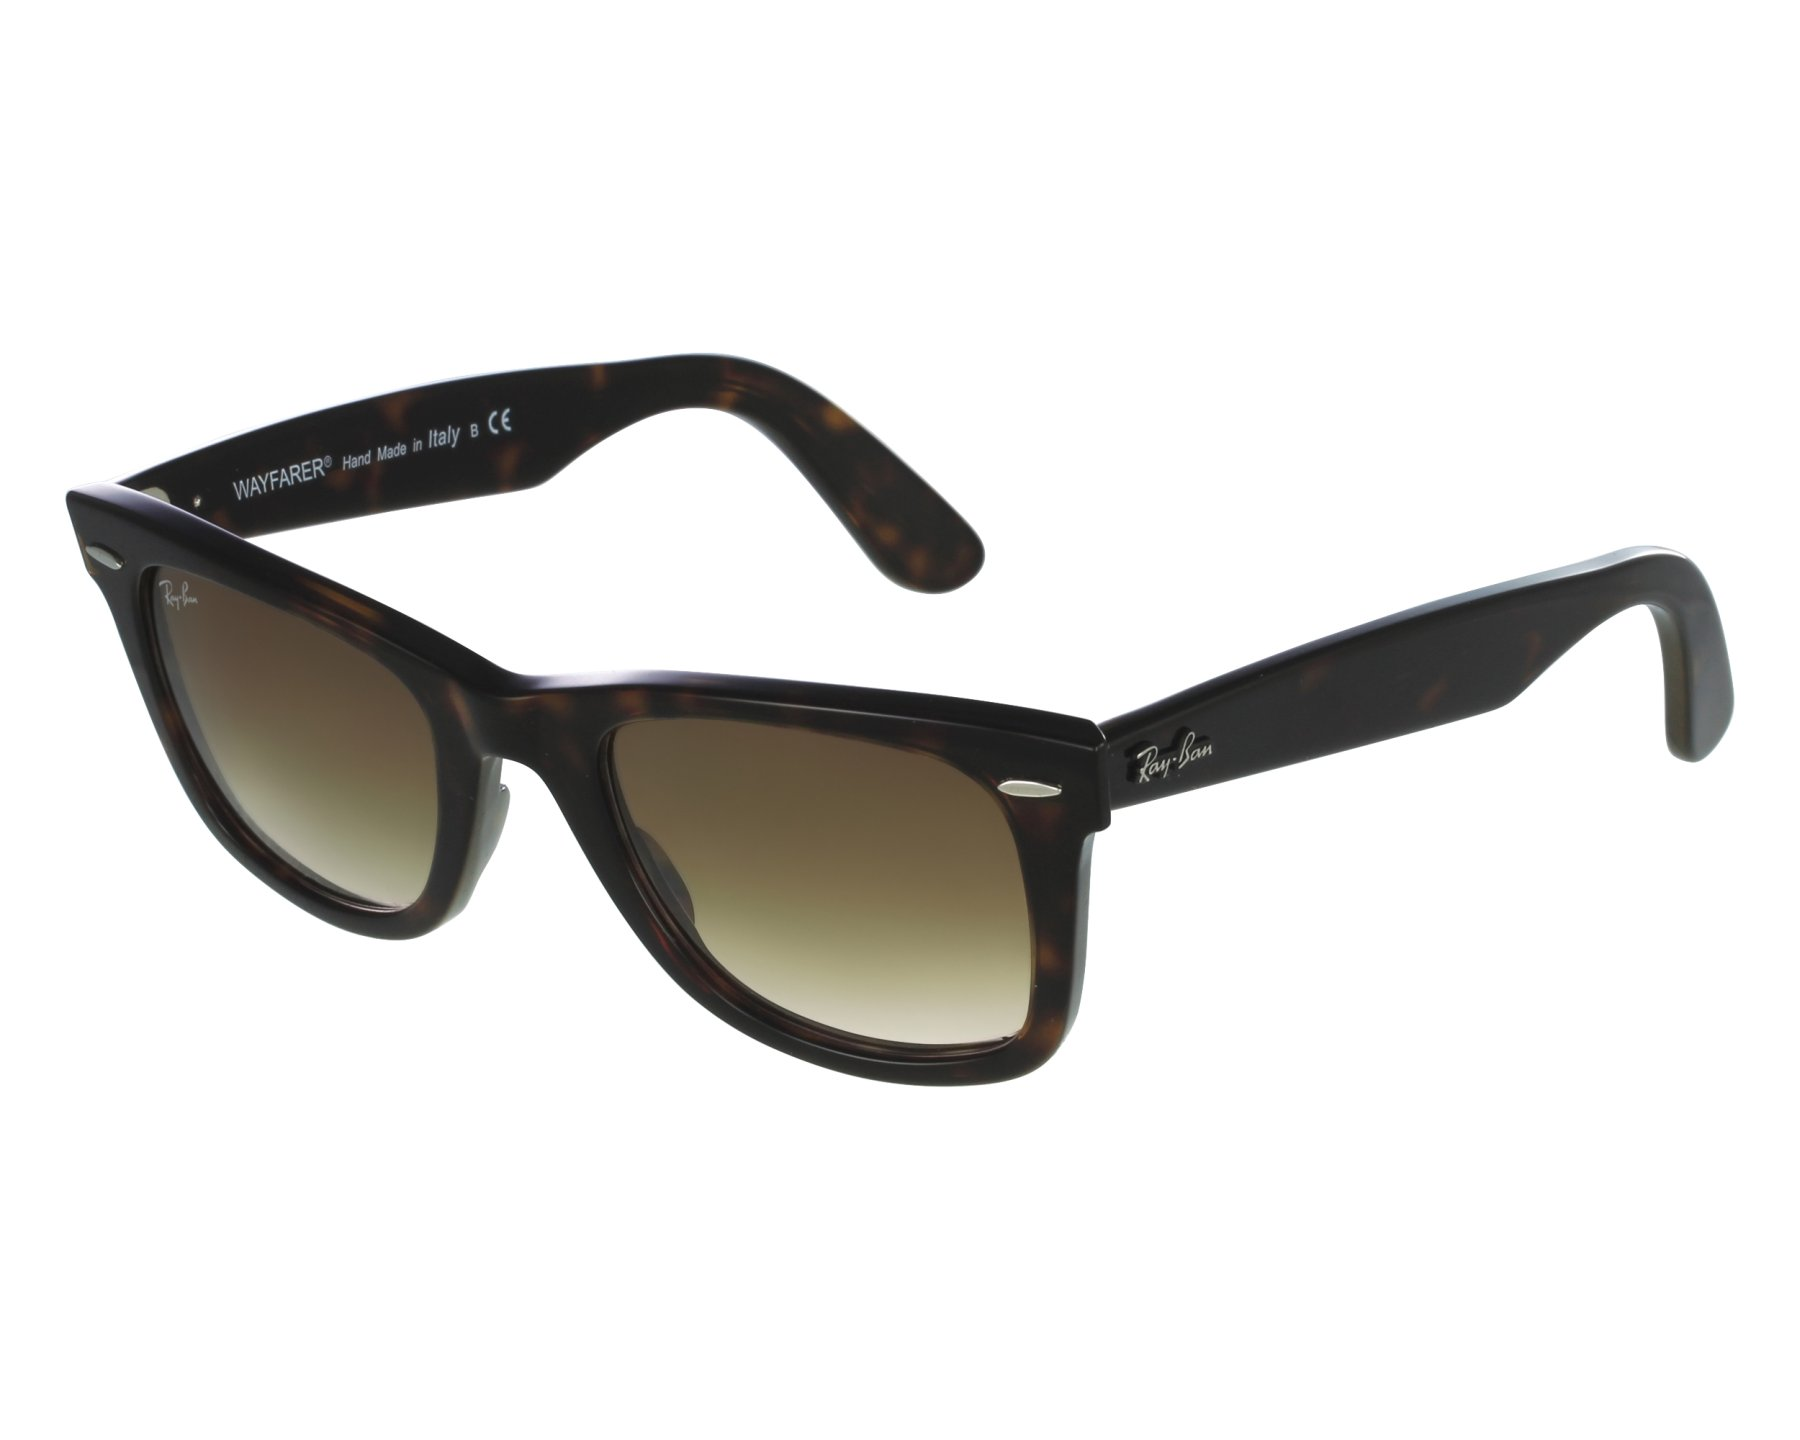 a204267b4034 Sunglasses Ray-Ban RB-2140 902 51 50-22 Havana front view